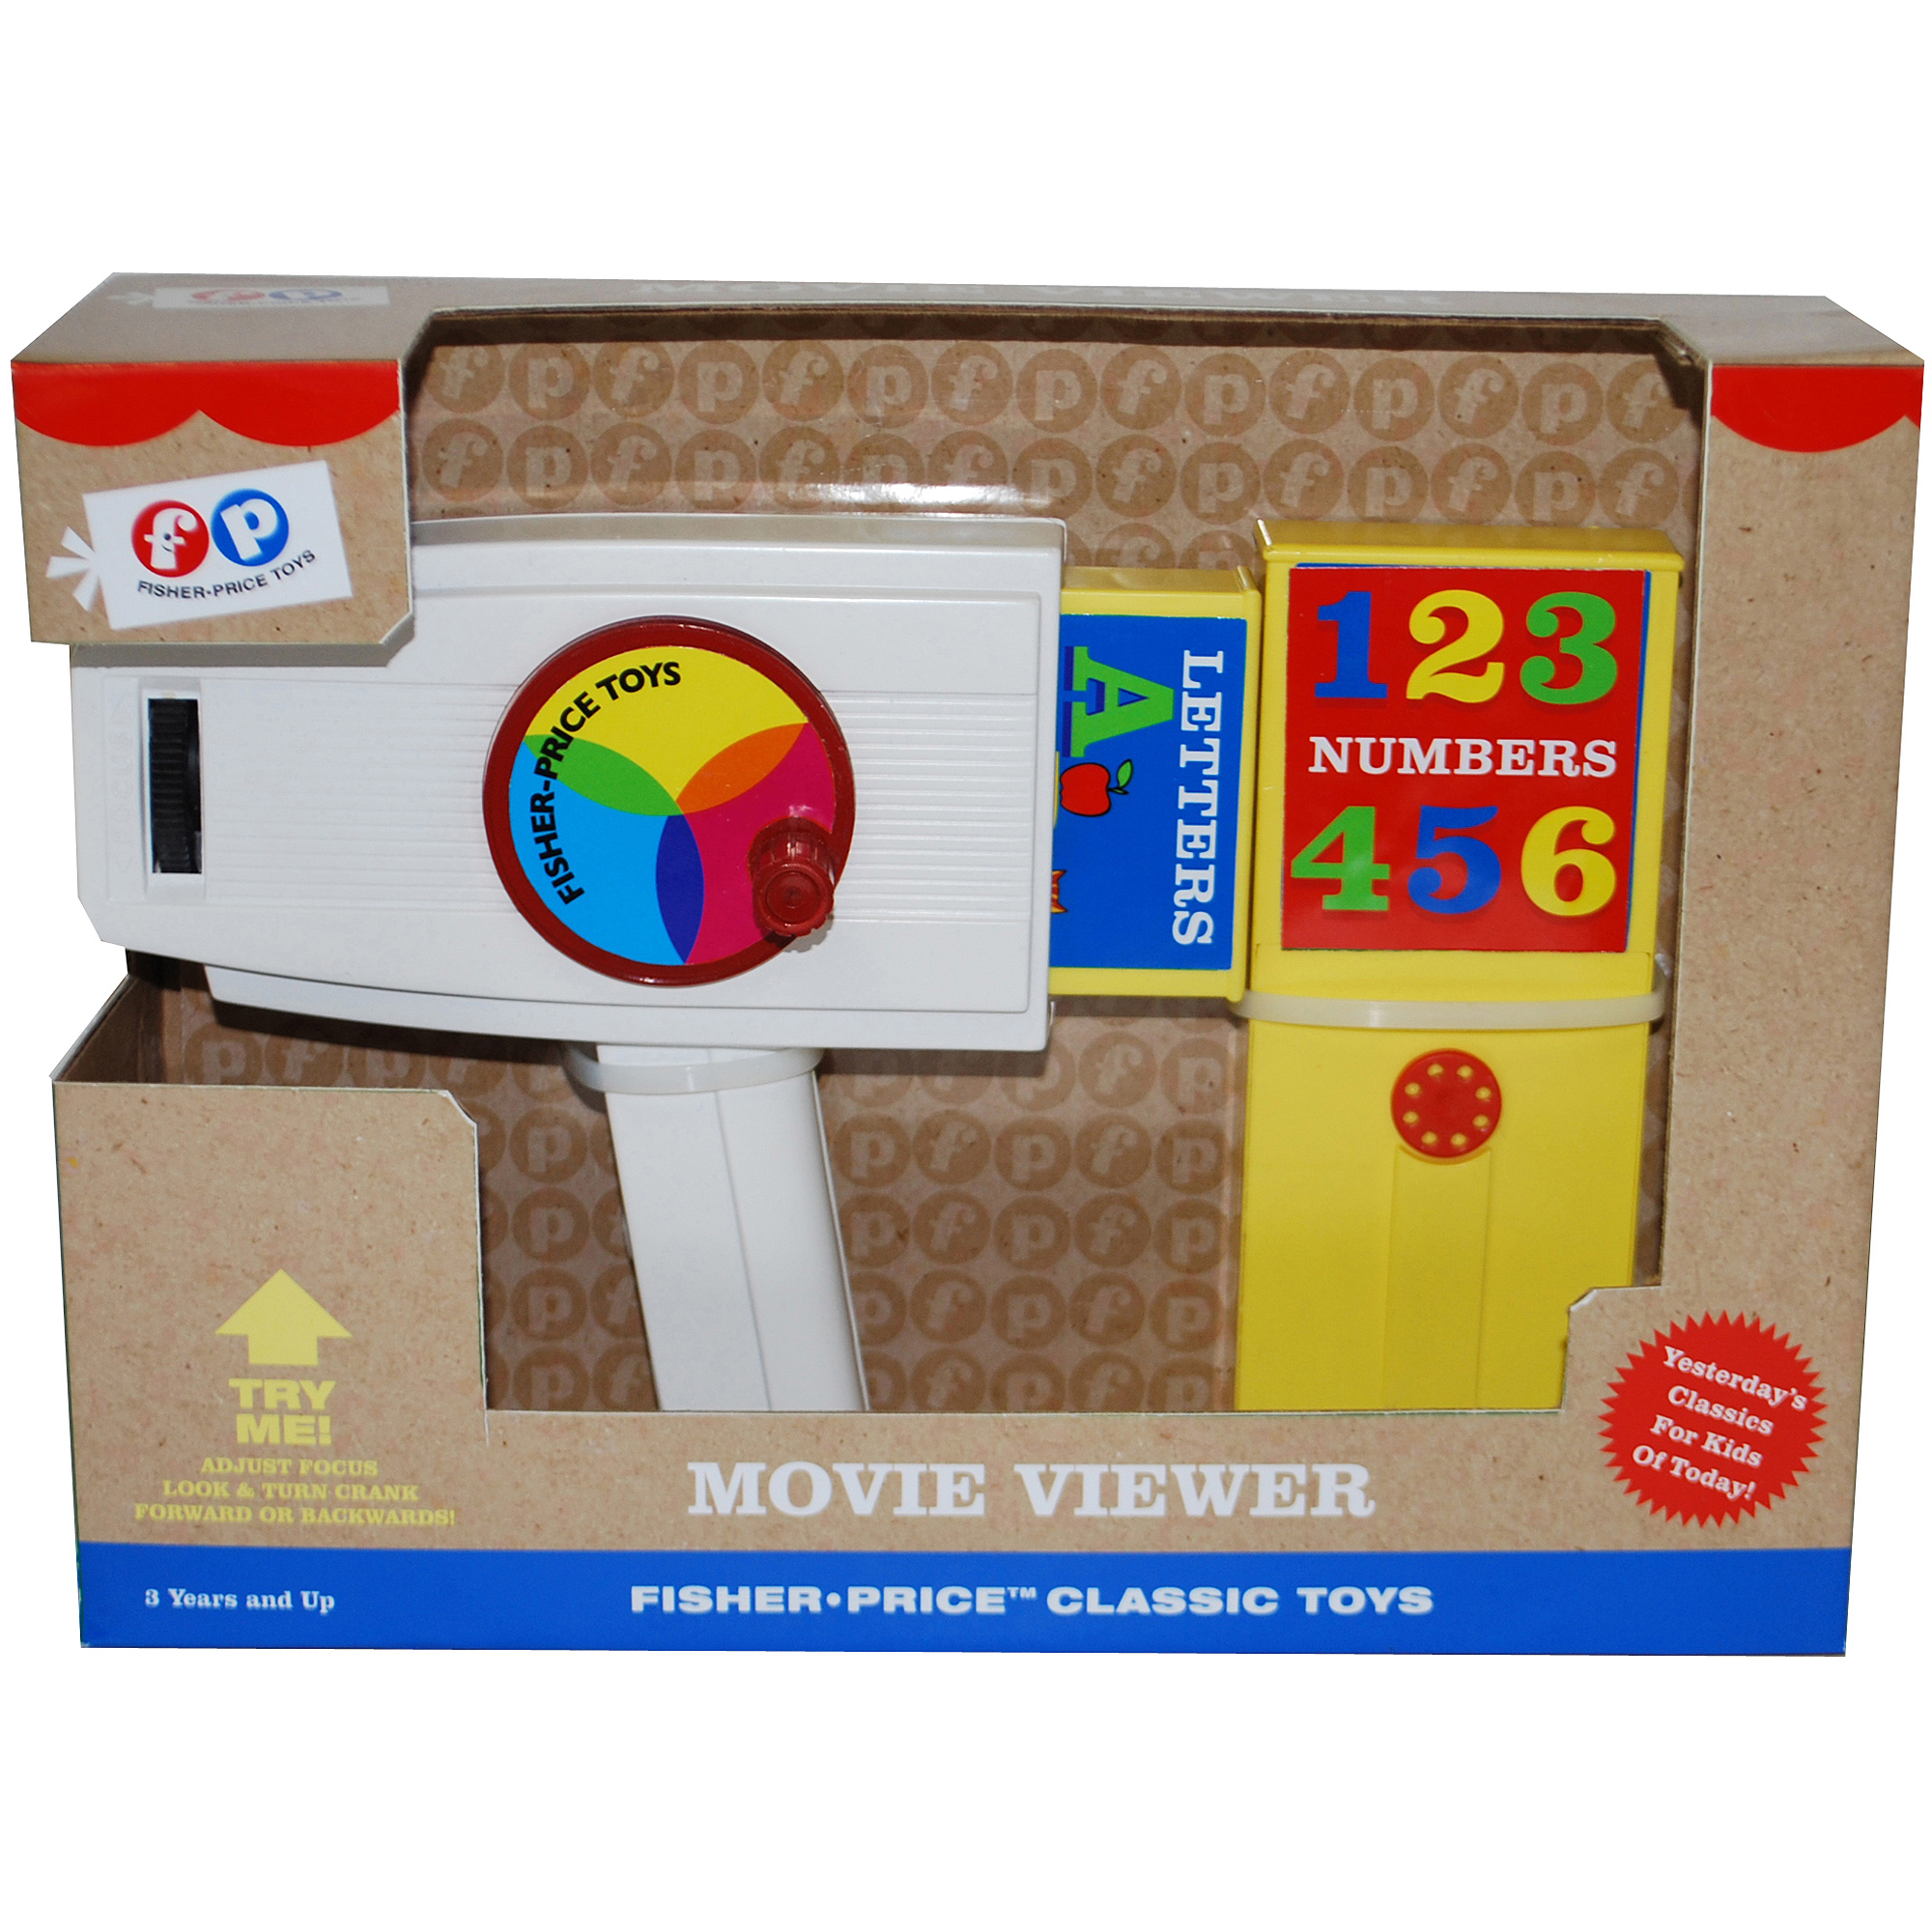 movie viewer letters